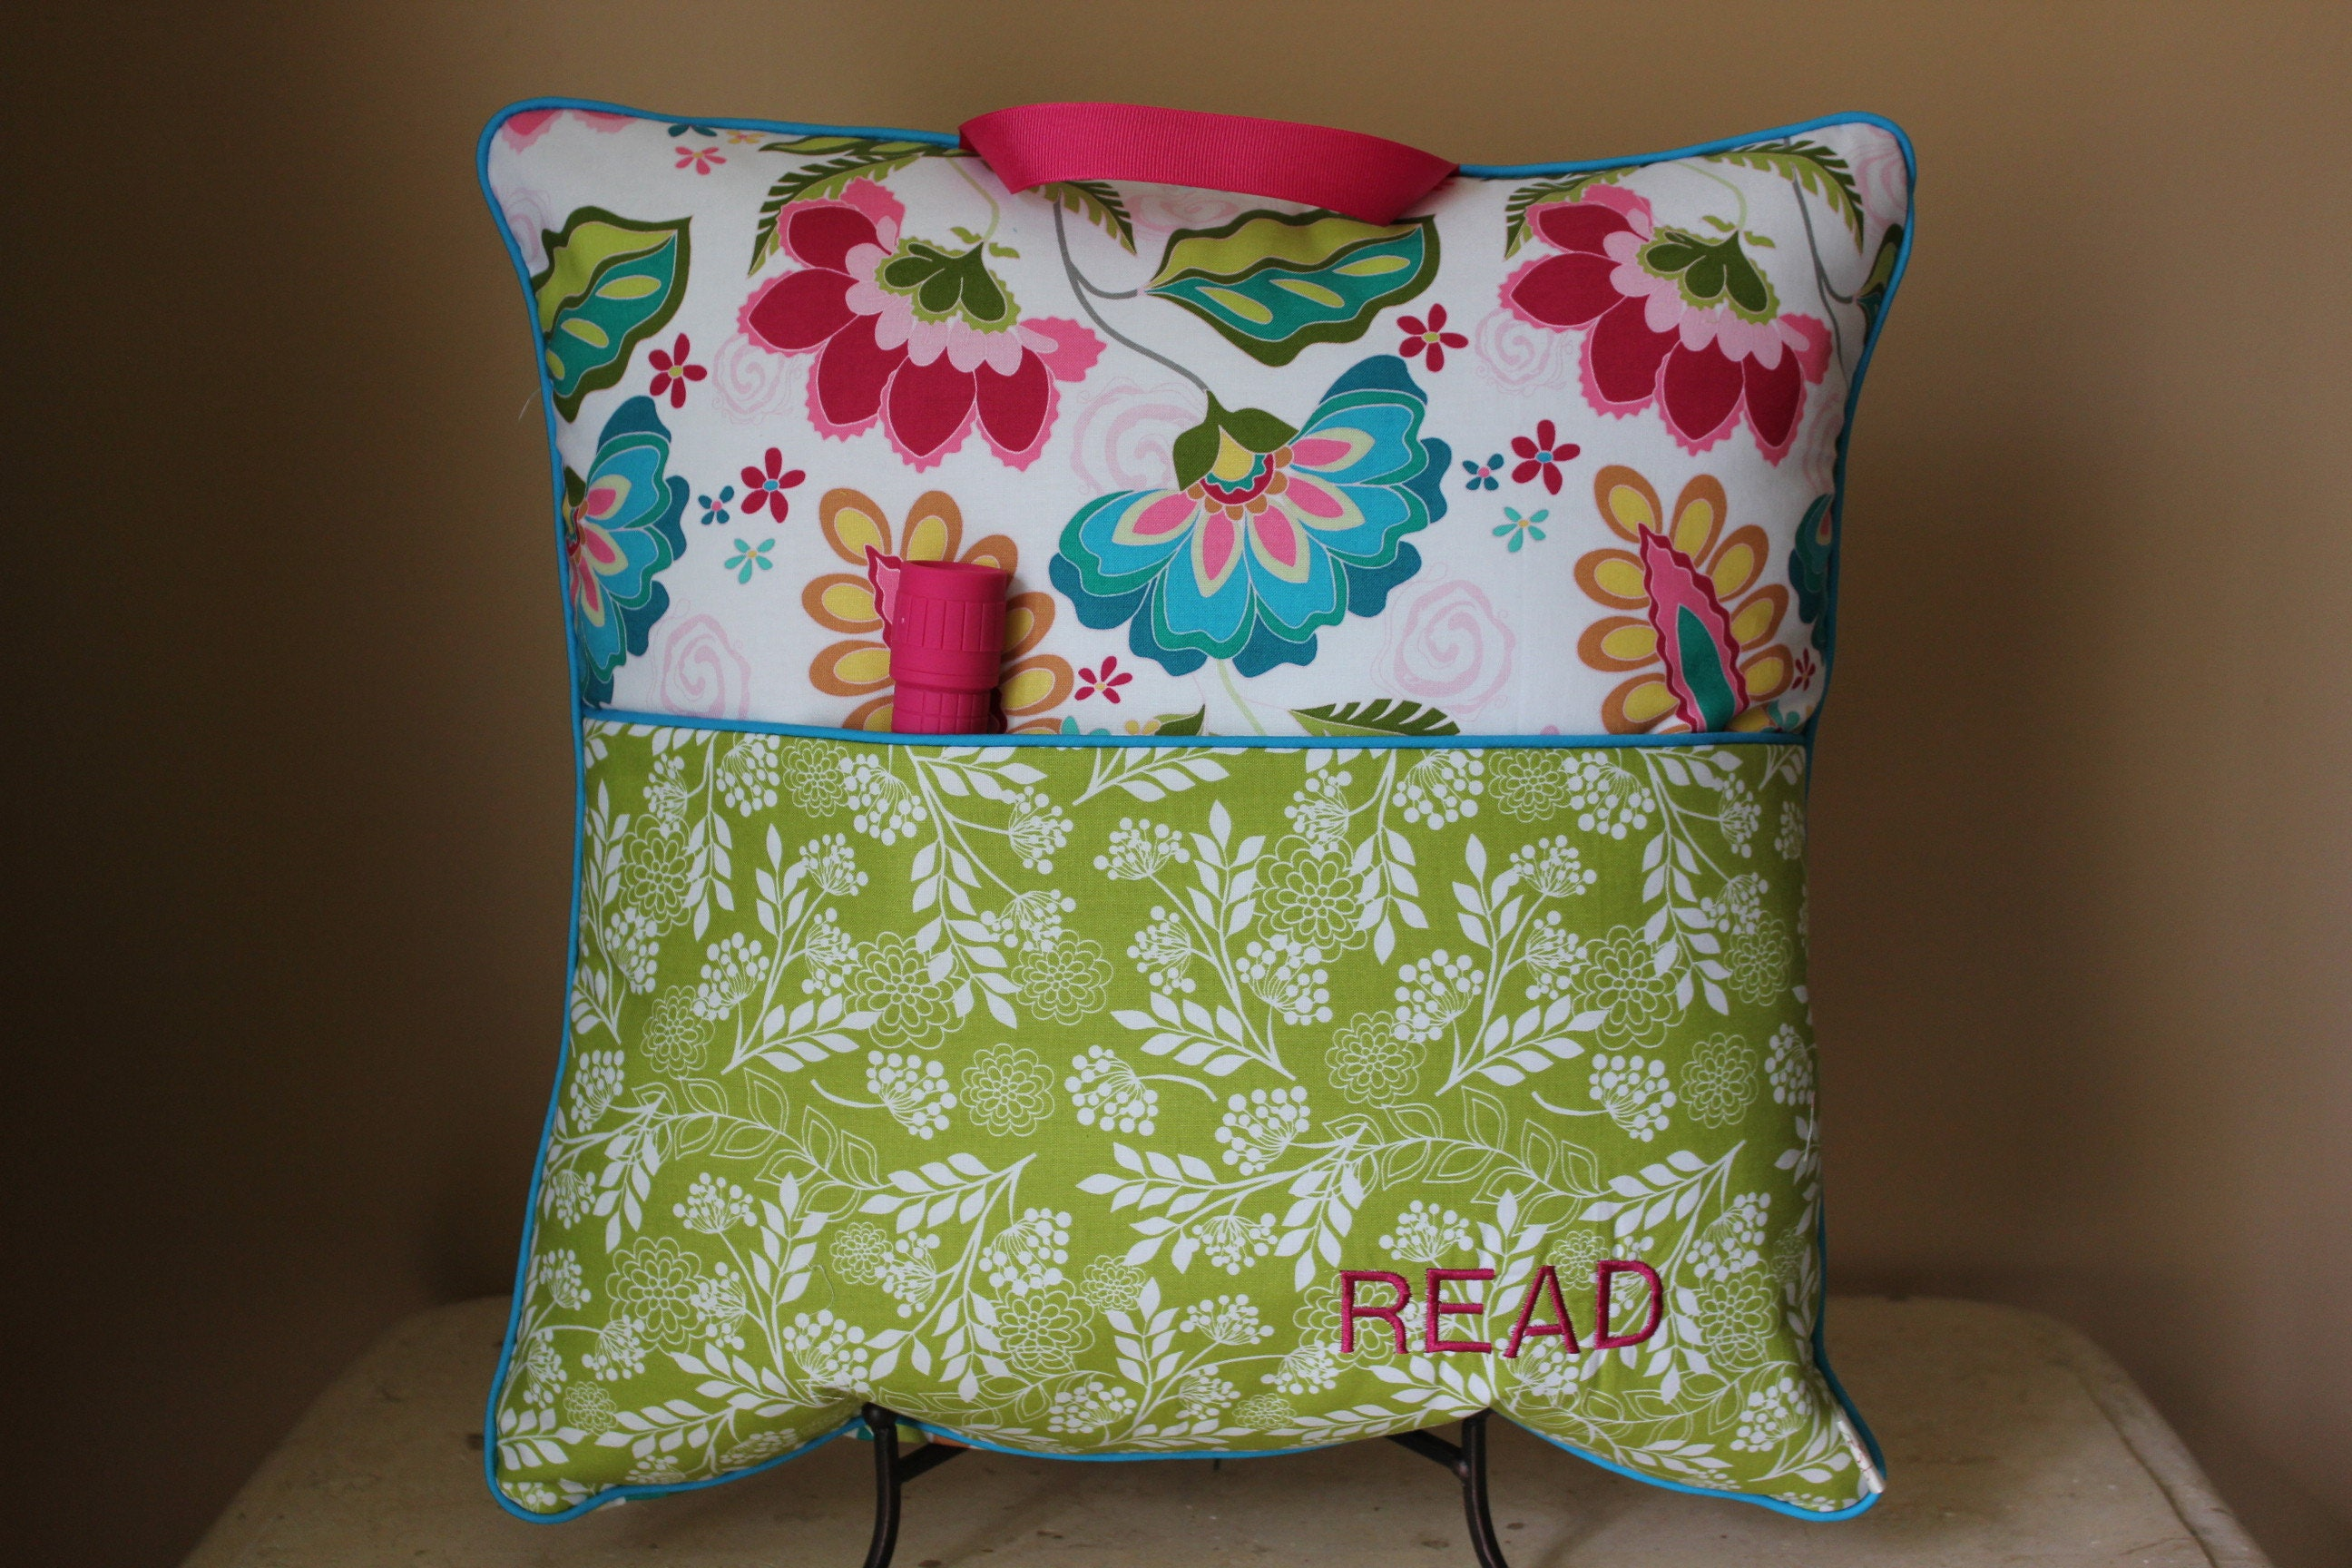 flowertravel reading pillow with flashlight camp